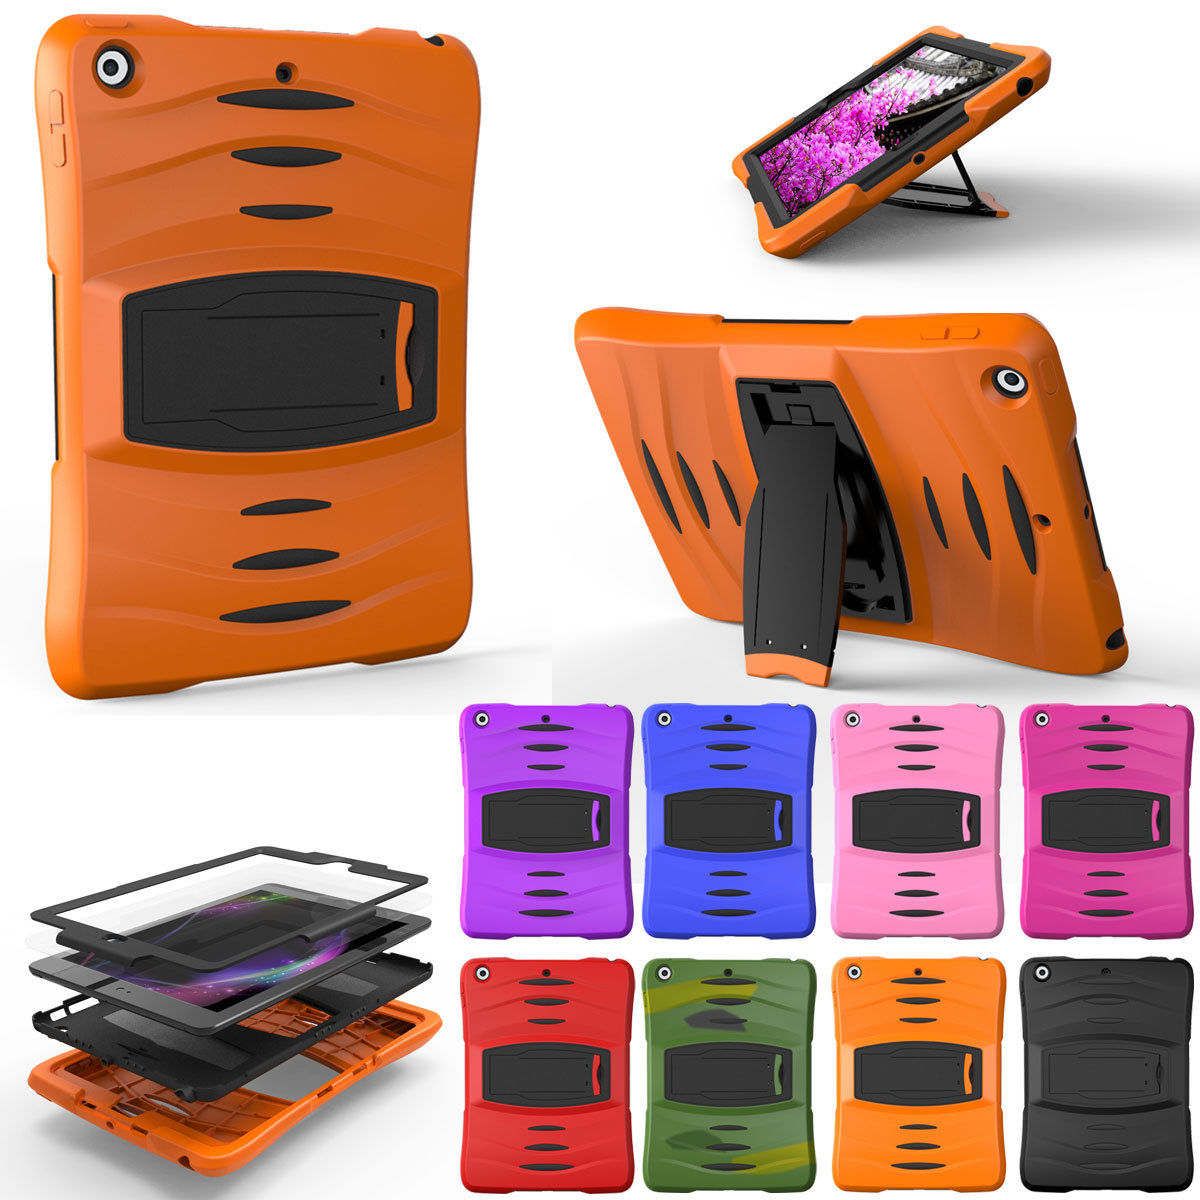 For Samsung Galaxy Tab A a6 10.1 SM-T580 T585 T580N Assembly Heavy Duty Cover Shock Proof Tablet Silicone Hard Case Stand Case heavy duty silicone hard case cover protector stand tablet for samsung galaxy tab a a6 10 1 2016 t585 t580 sm t580 stylus